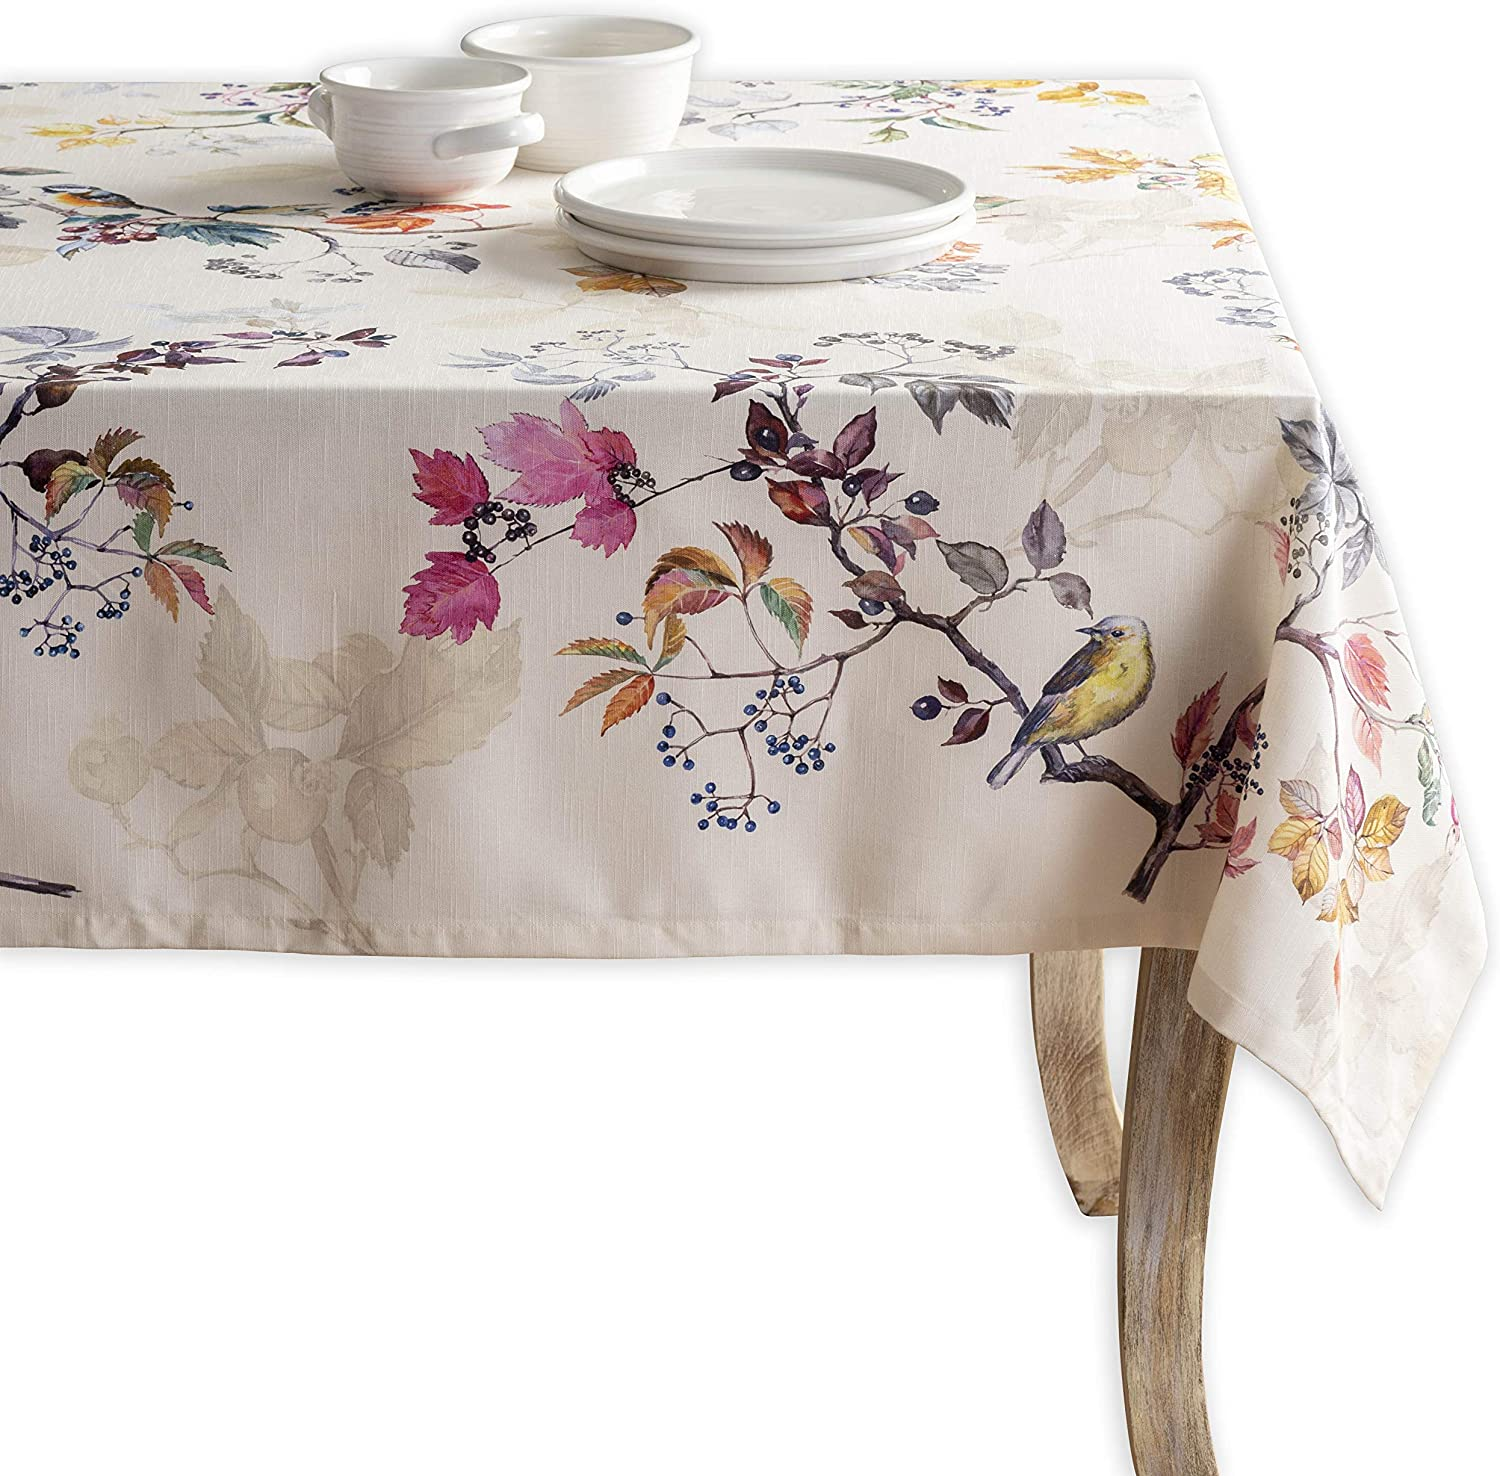 Maison d' Hermine Equinoxe 100% Cotton Beige Tablecloth 54 Inch by 54 Inch. Perfect for Thanksgiving and Christmas